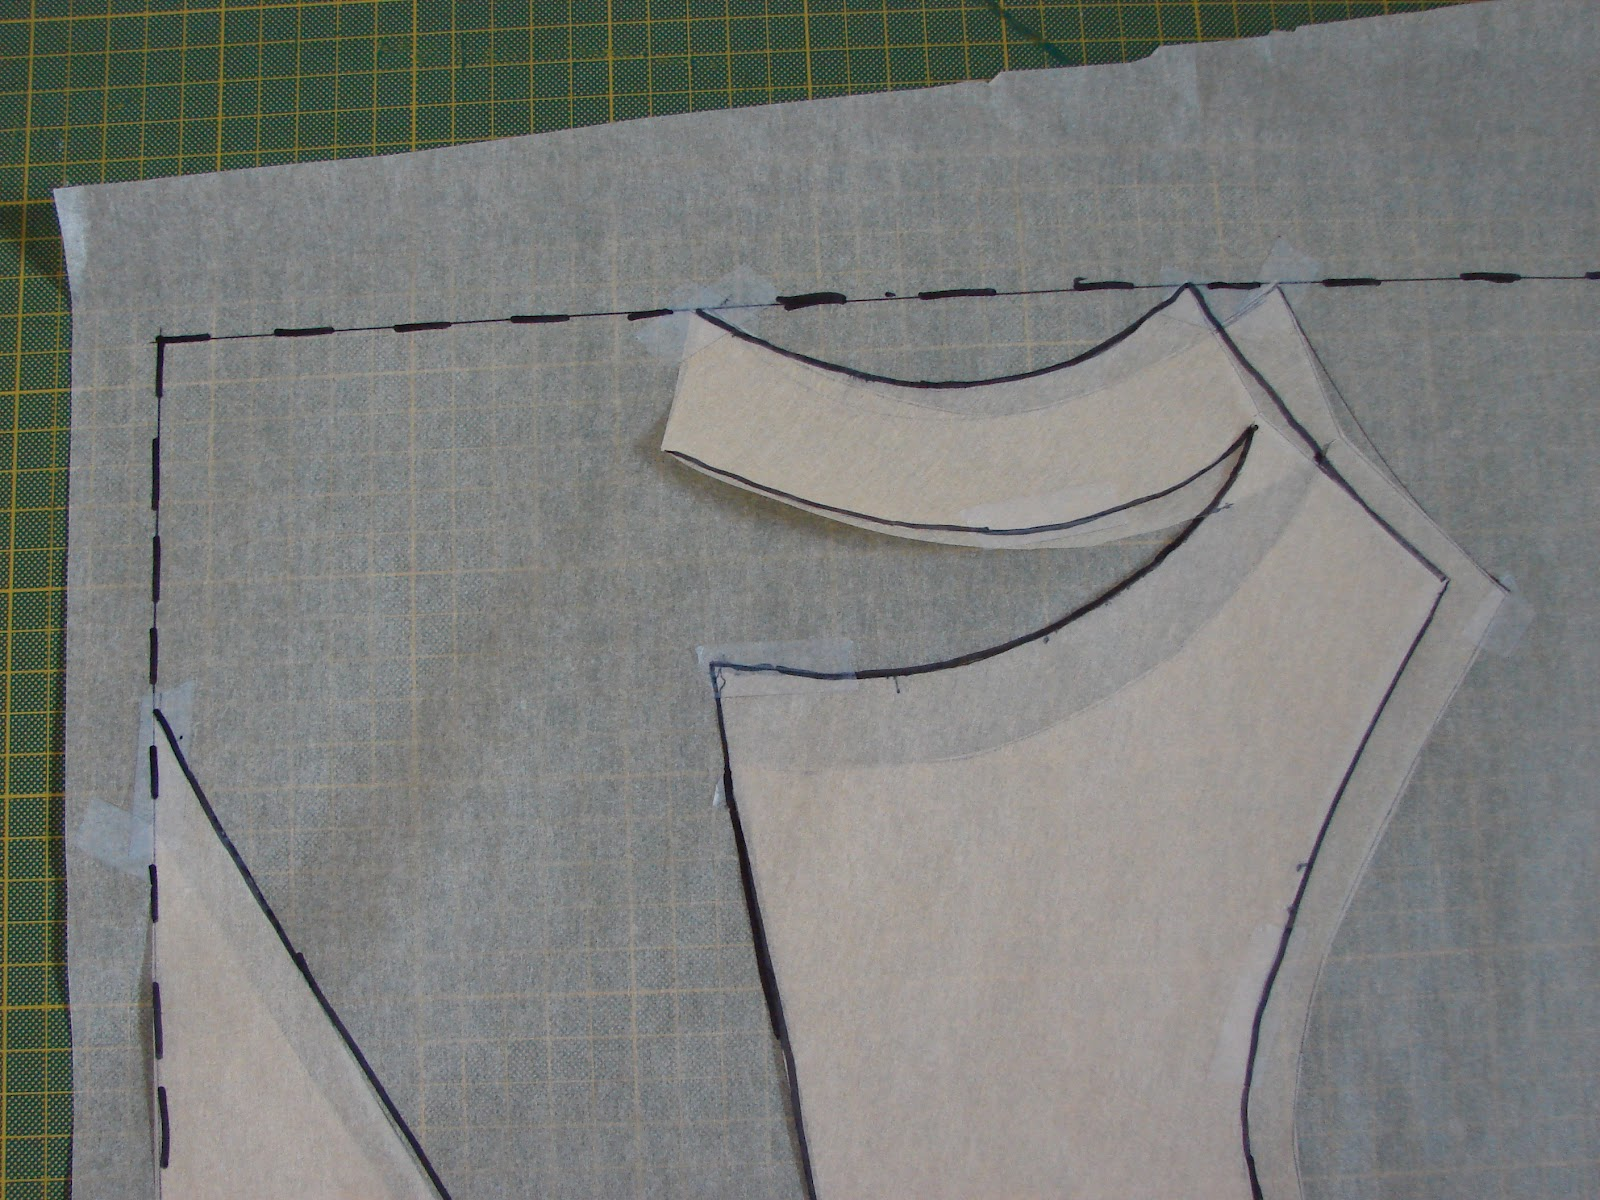 Free sewing tutorial draft a deep cowl neck top poldapop designs jeuxipadfo Image collections